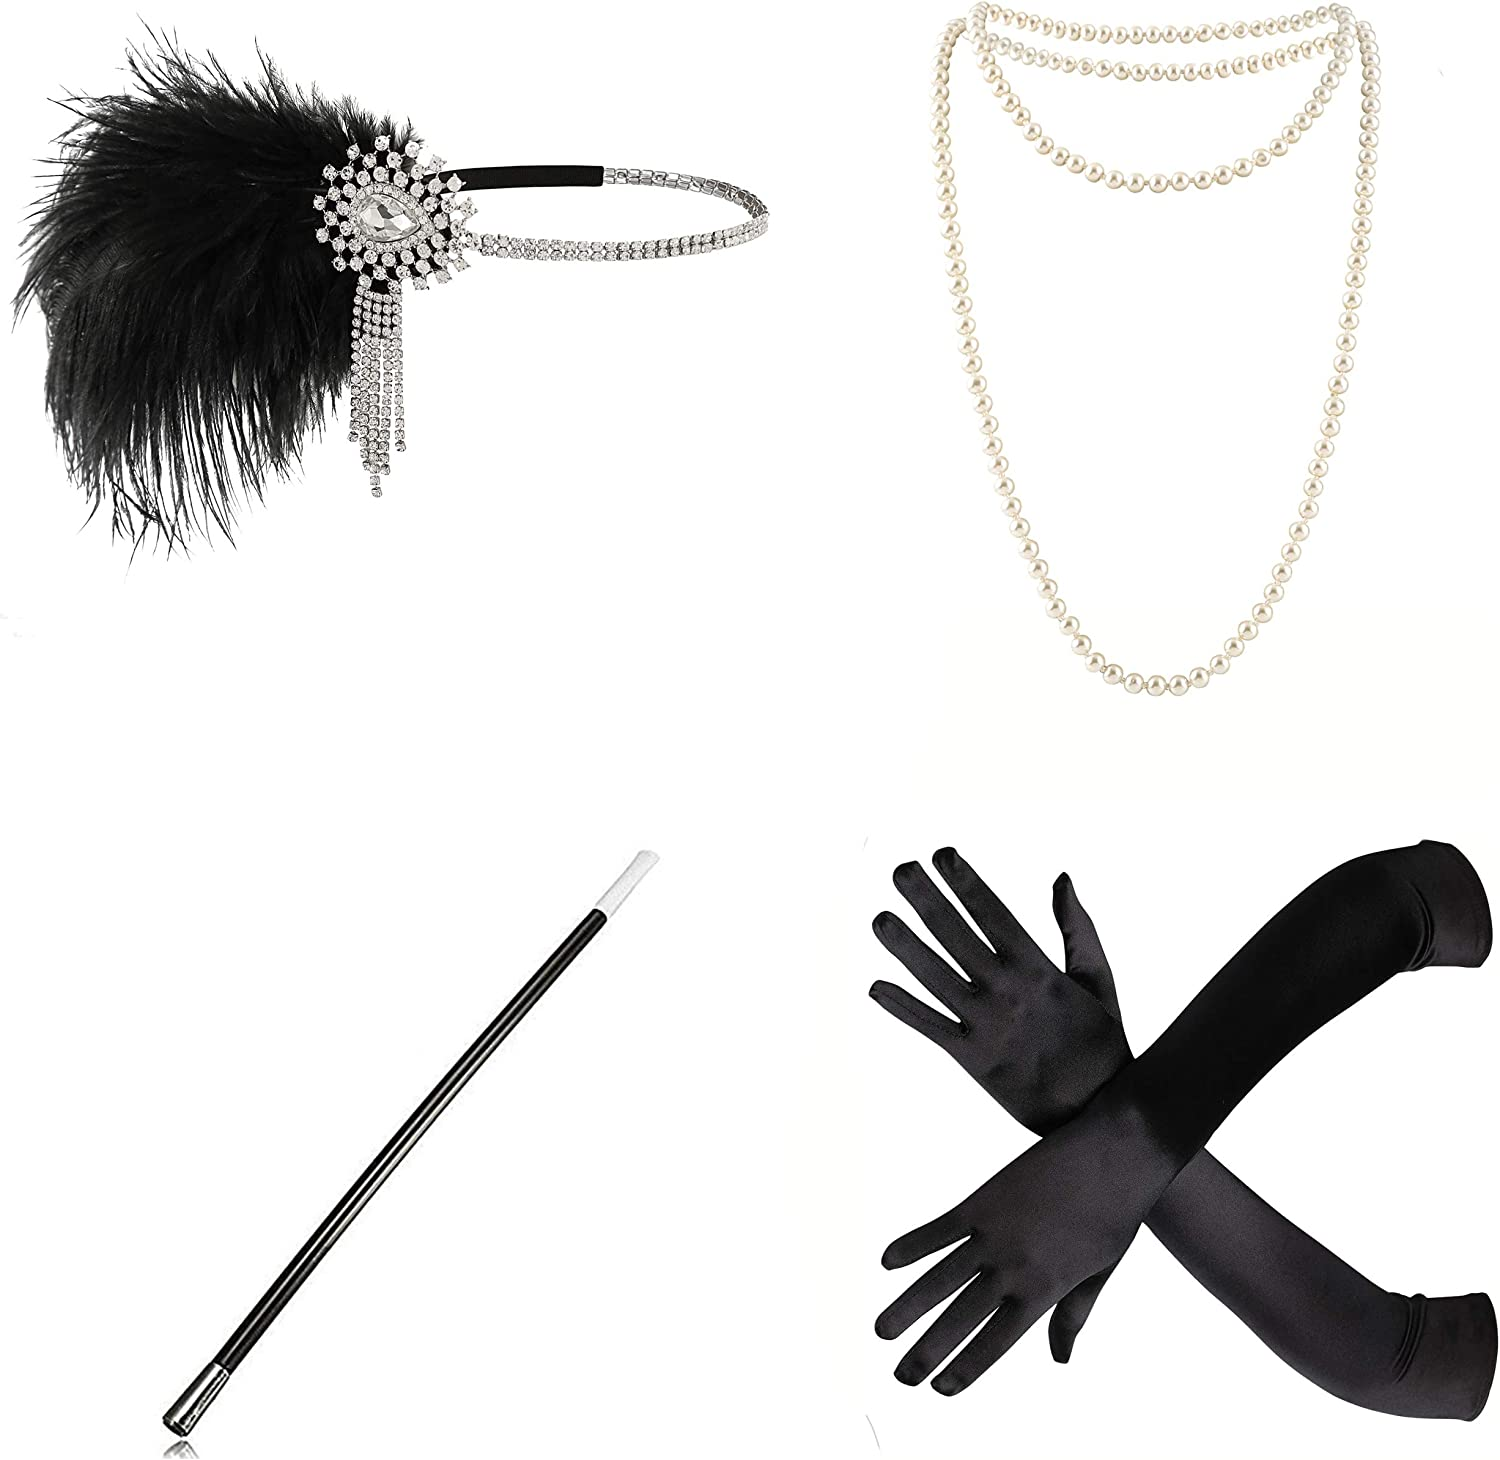 Vintage Gloves History- 1900, 1910, 1920, 1930 1940, 1950, 1960 Radtengle 1920s Flapper Accessories Set Feather Headband Pearl Necklace Black Gloves with Cigarette Holder Gatsby Costume Metme $20.99 AT vintagedancer.com